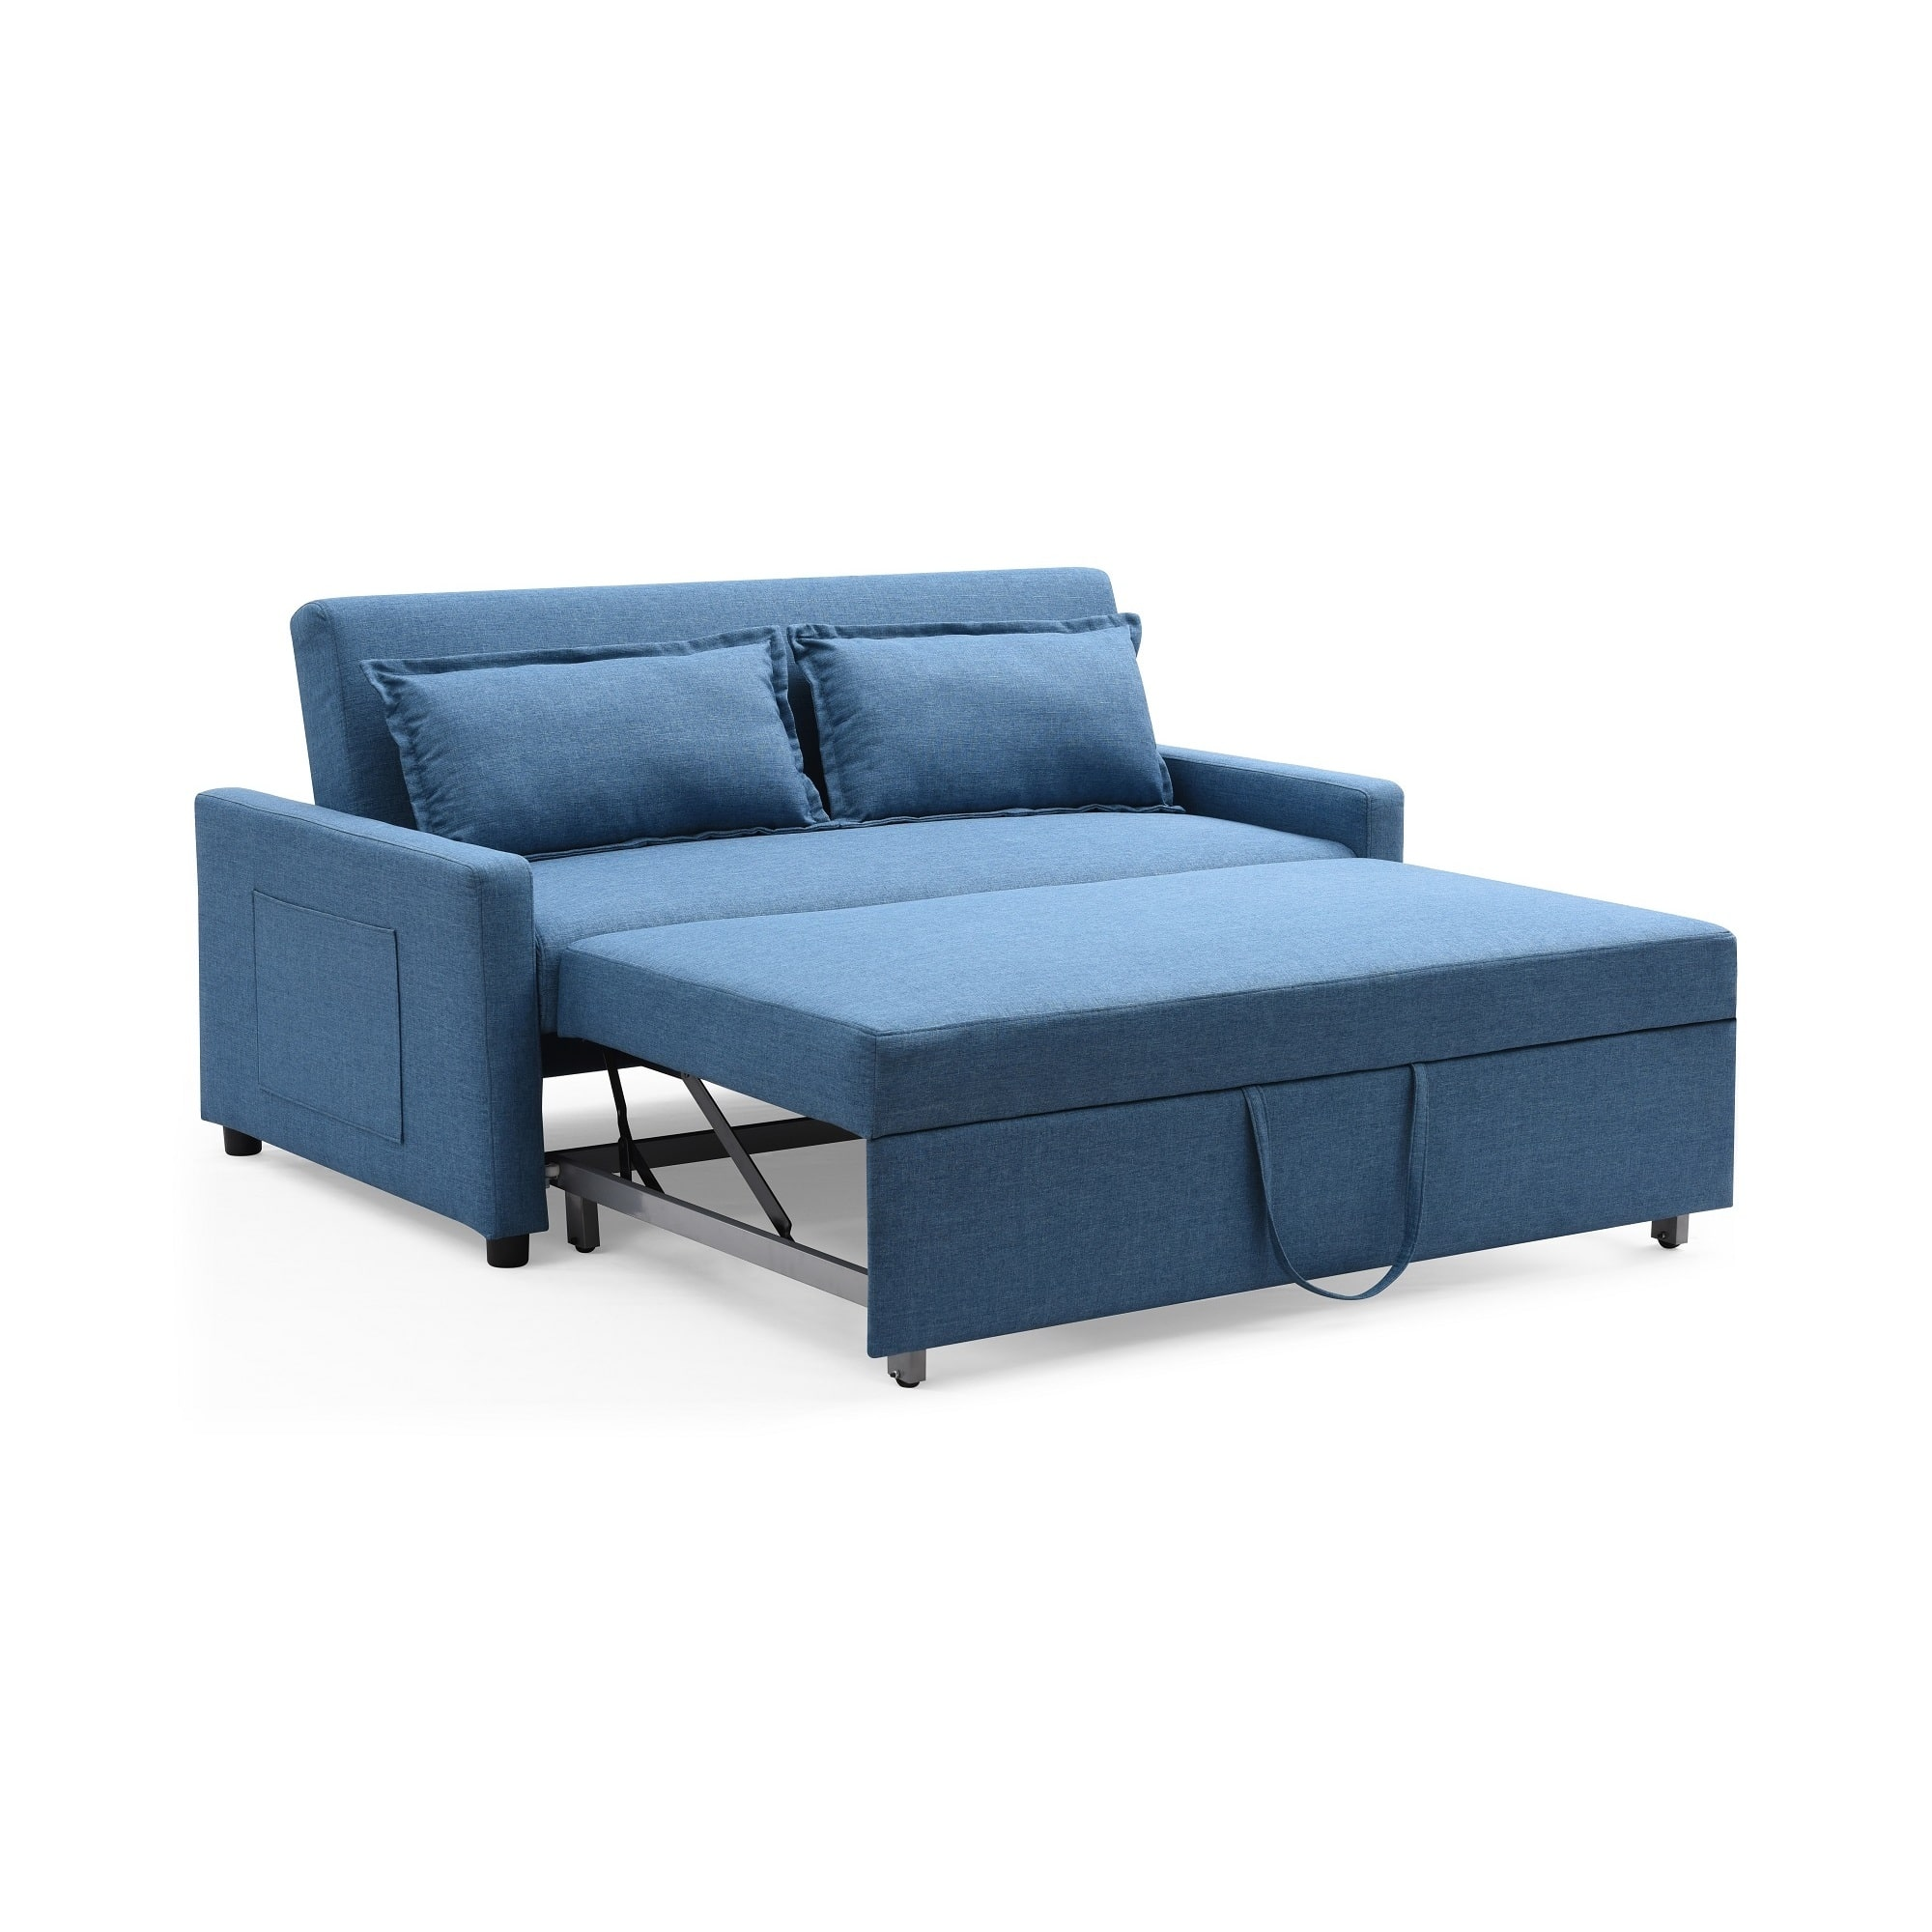 Candy Big Sofa Us Pride Furniture Rhina Contemporary Fabric Upholstered Sofa Bed With Two Pillows Blue S5142